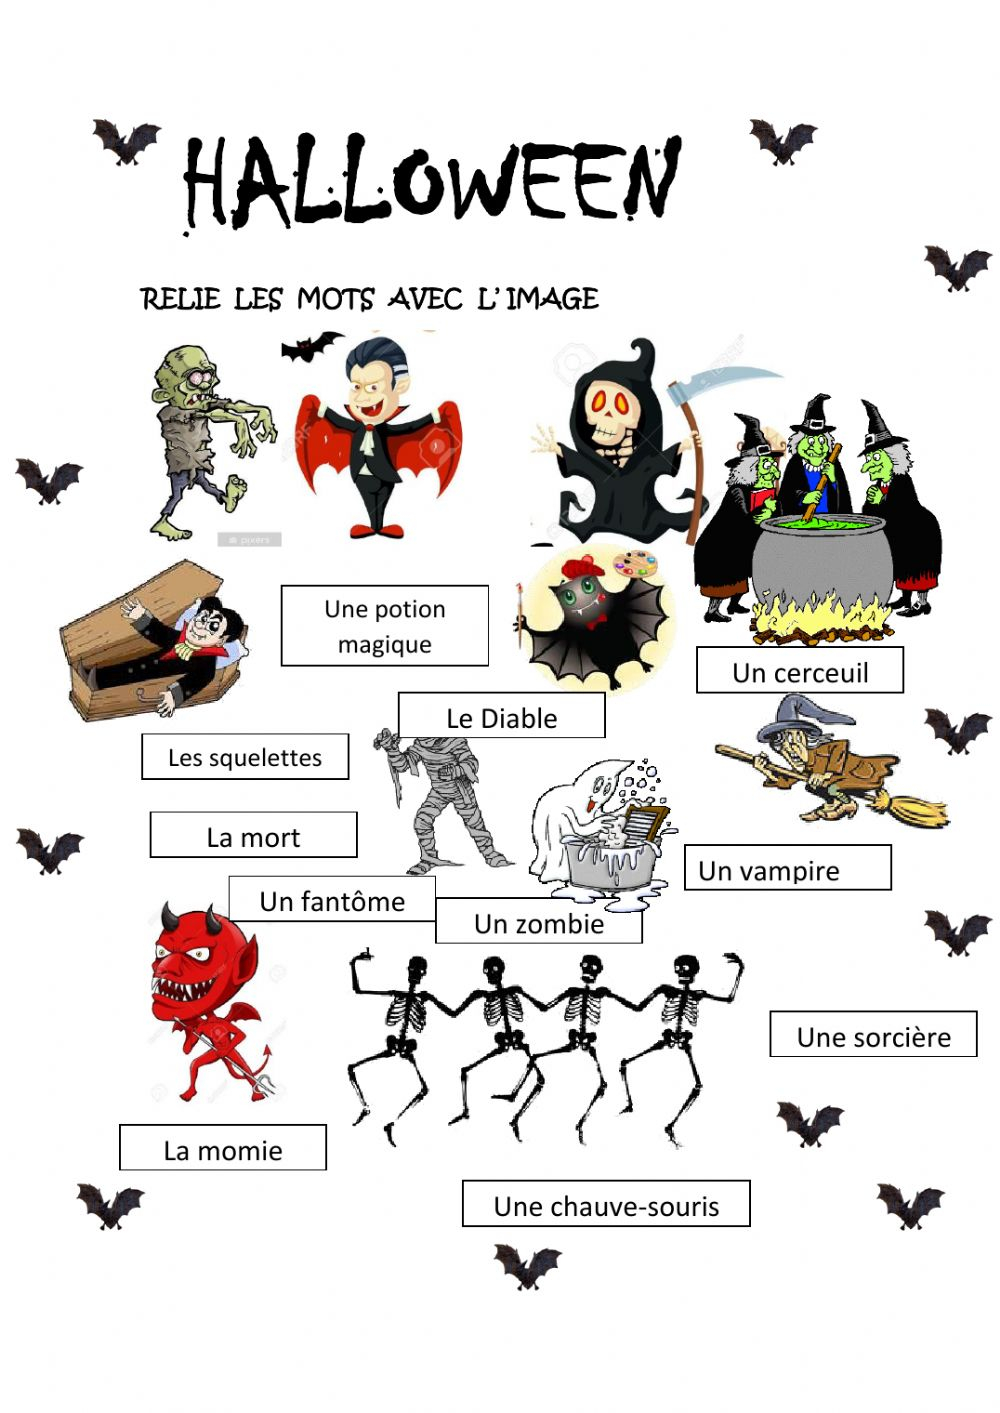 Halloween Online Exercise For 3º Primaria